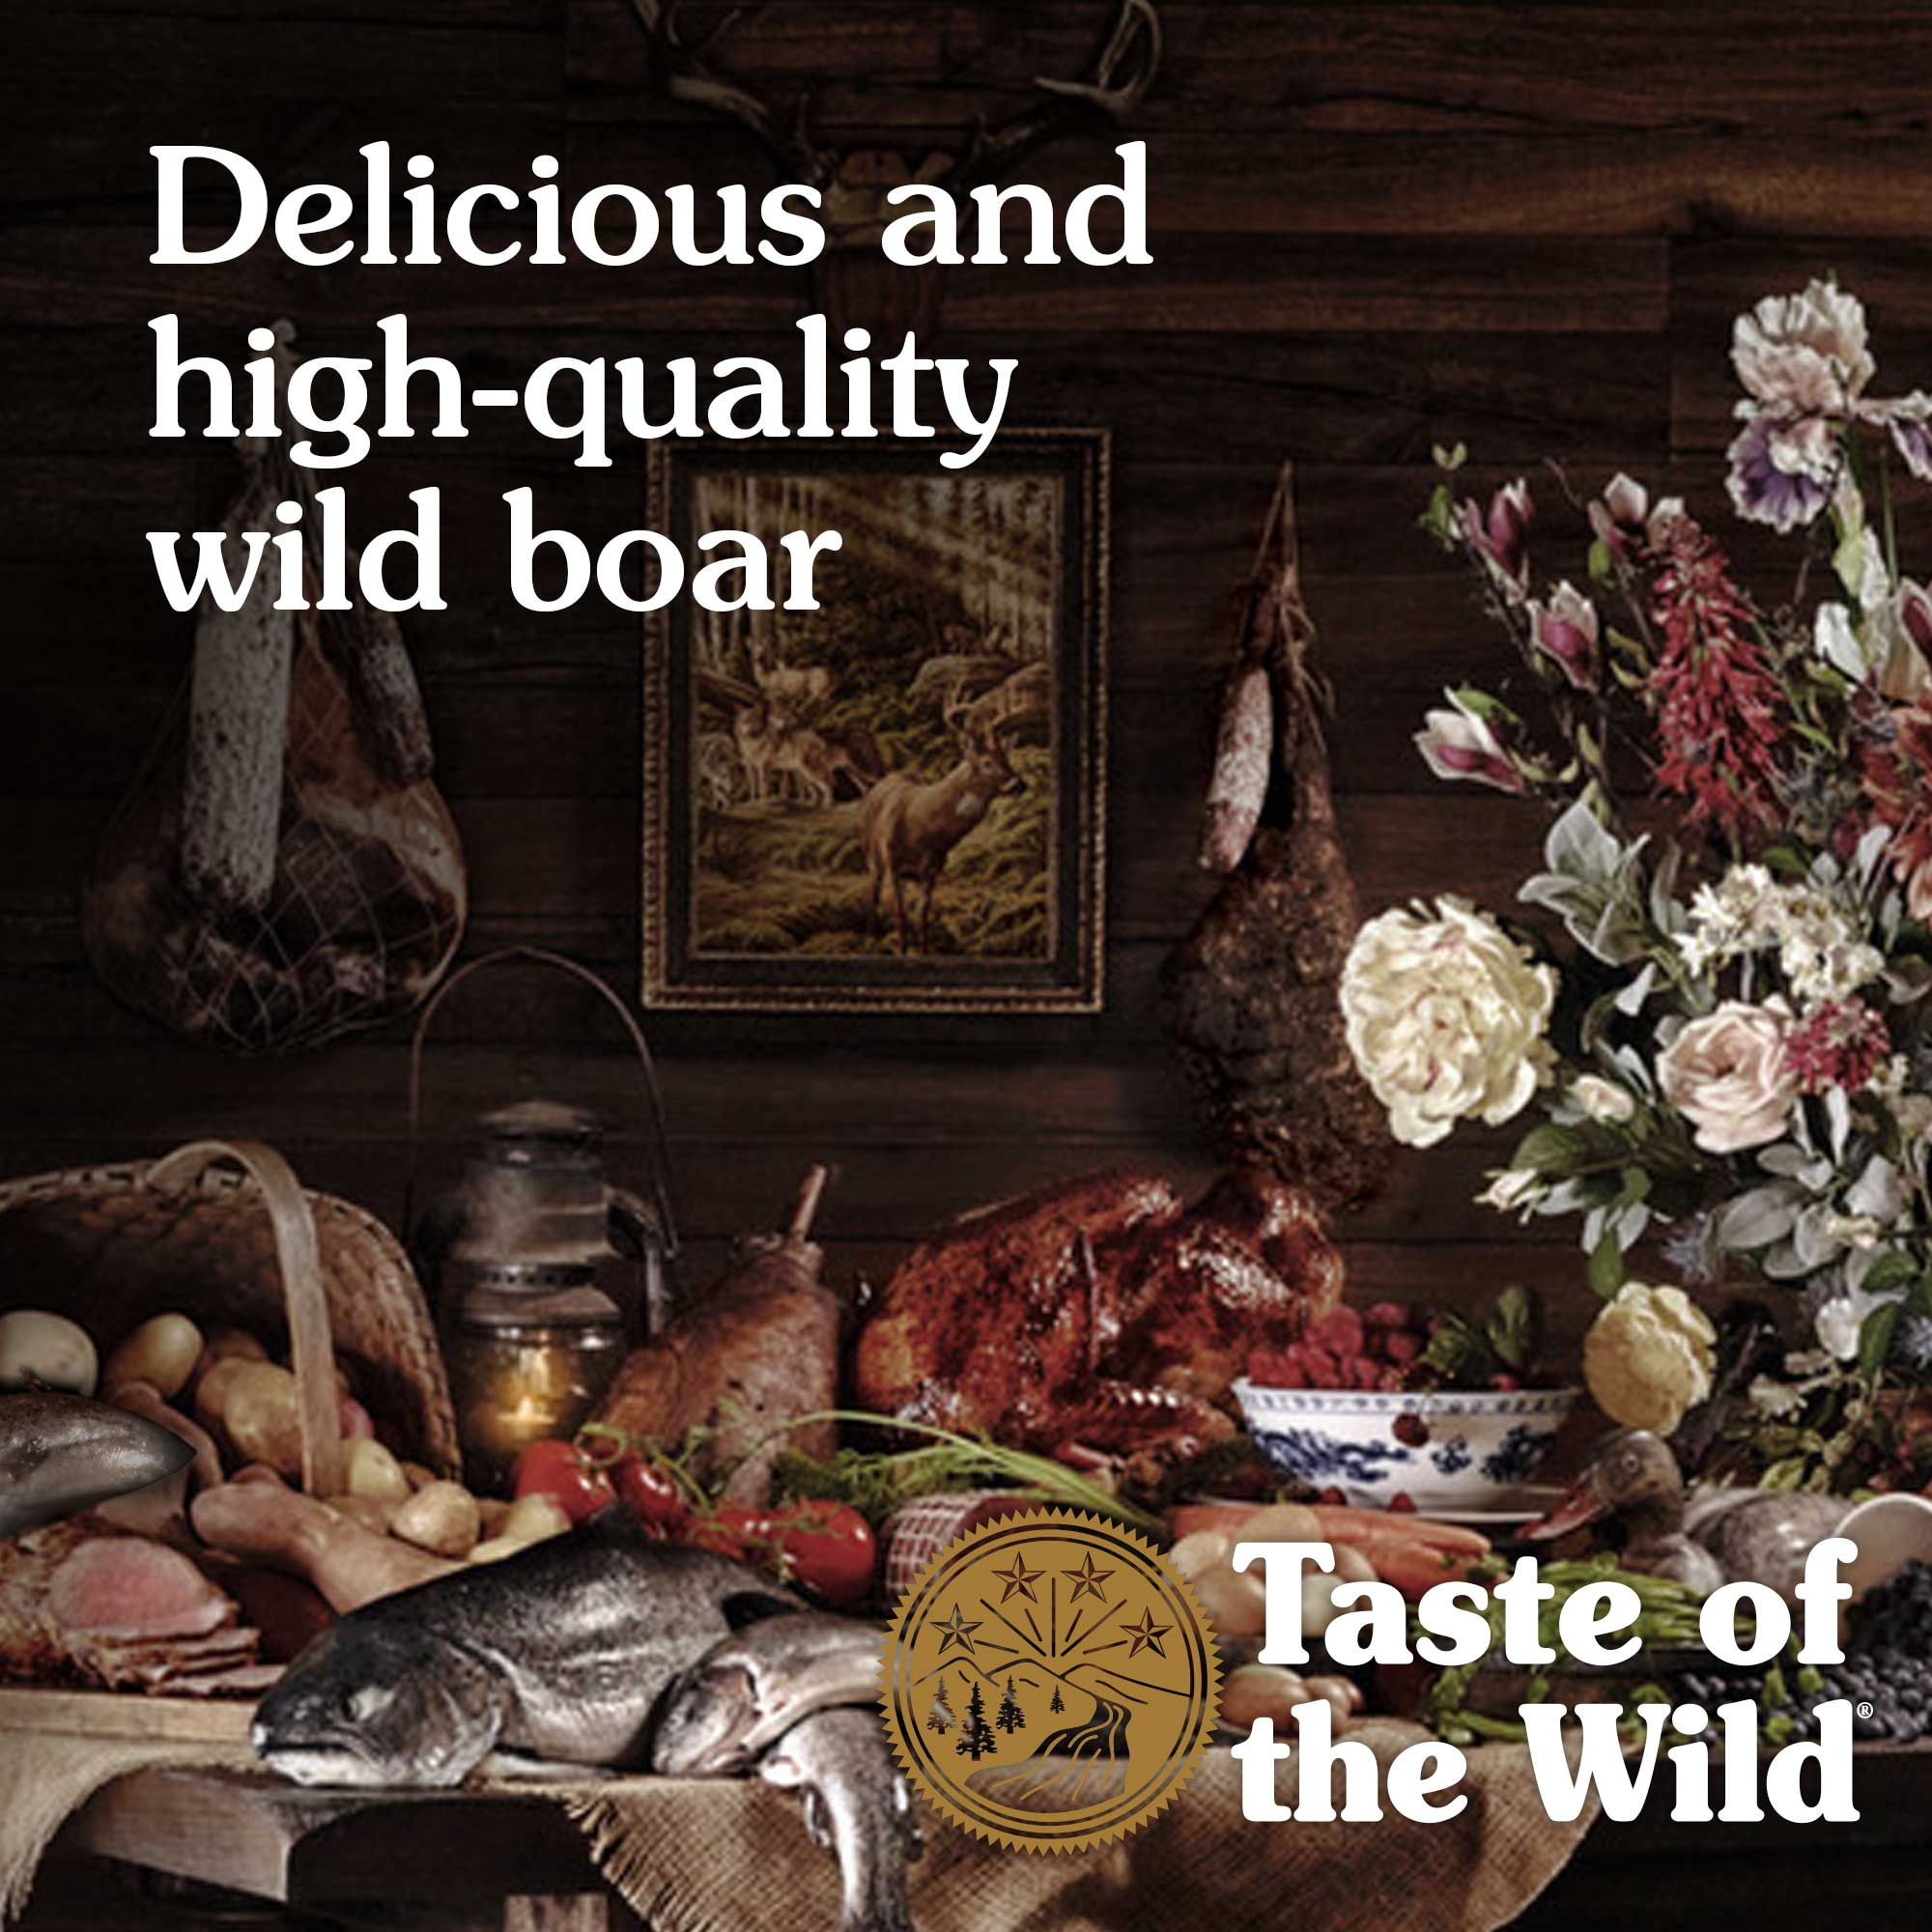 Delicious and high-quality wild boar